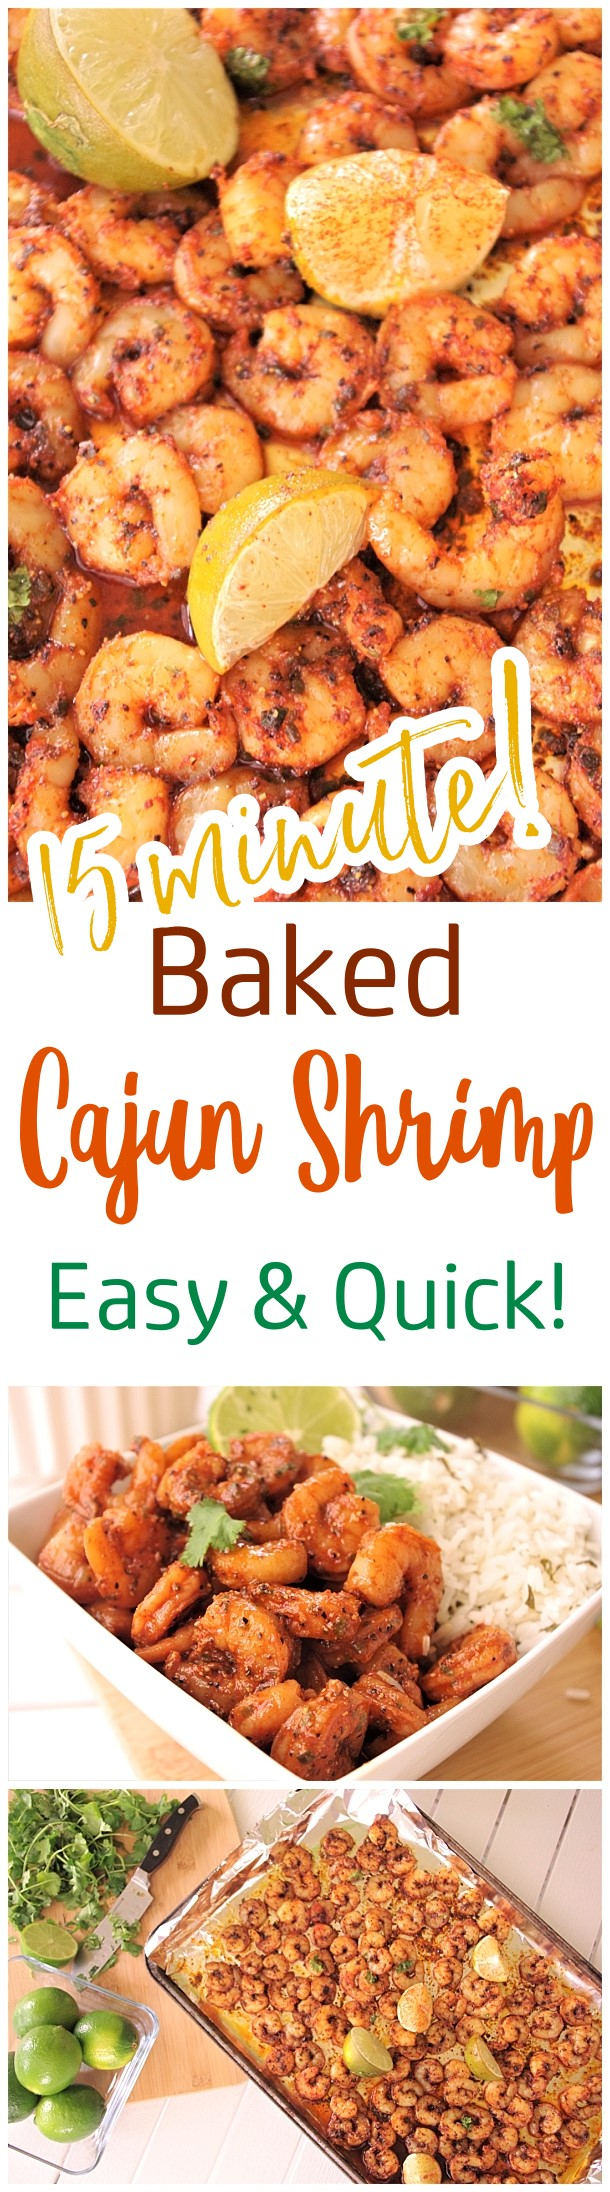 Baked Sheet Pan Cajun Shrimp Entree Recipe - 15 minutes and so delicious! Use it in tacos, meal prep bowls, or over rice or noodles. So versatile and the flavor is so yummy you'll want to eat the entire pan by itself! - Dreaming in DIY #30minutecajunshrimp #cajunshrimp #sheetpanshrimp #shrimprecipes #easyshrimprecipes #quickshrimprecipe #seafood #baked #onepanmeals #fastrecipes #lunchrecipes #dinnerrecipes #healthyquickrecipes #quickandeasyrecipes